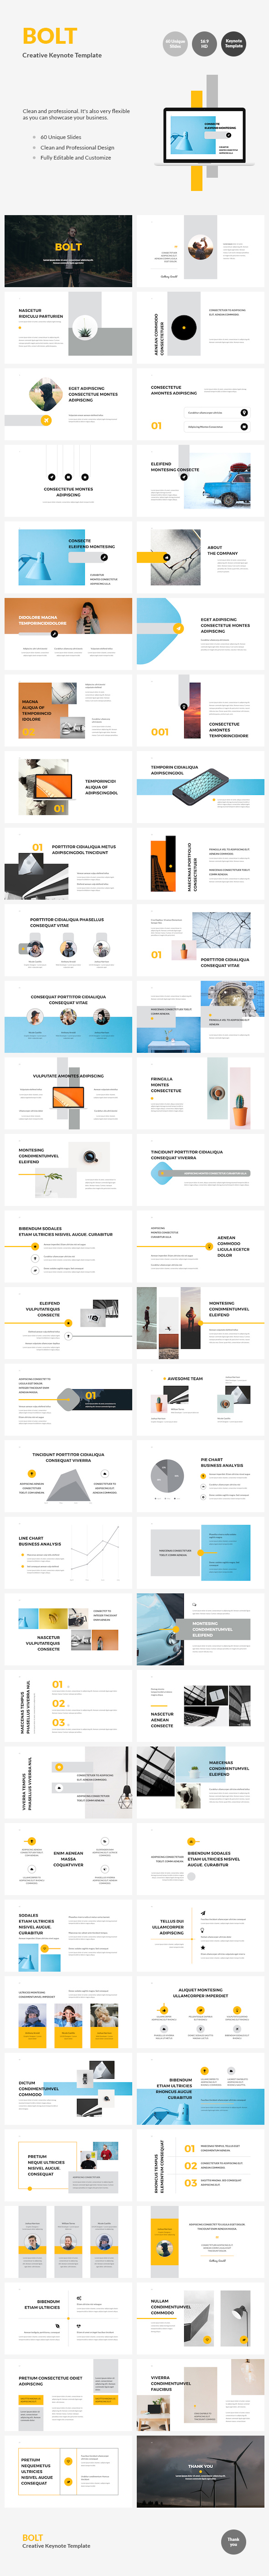 BOLT - Creative Keynote Template - Business Keynote Templates